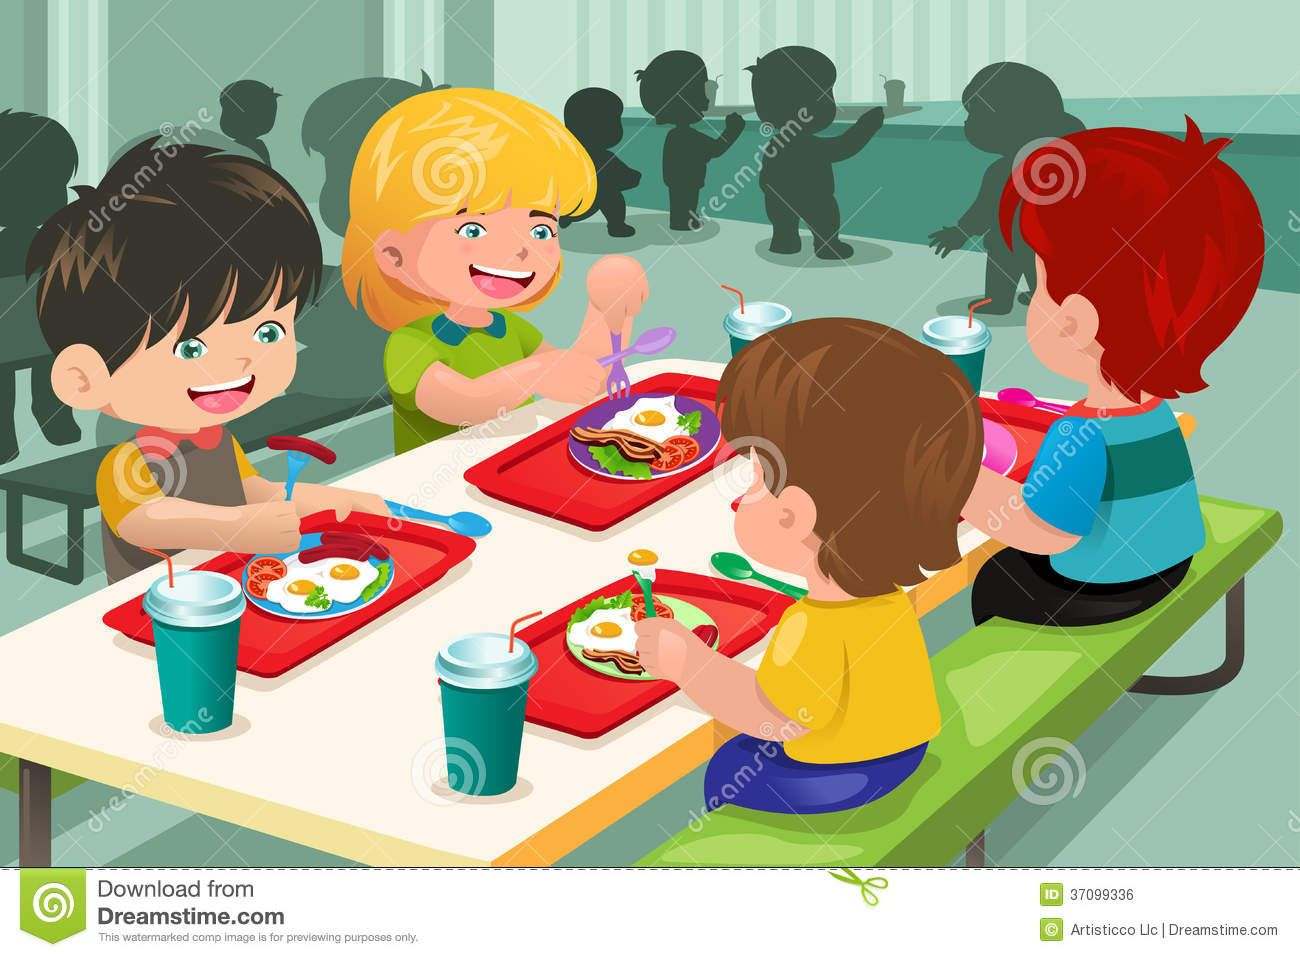 Cafeteria clipart cartoon. Image result for school